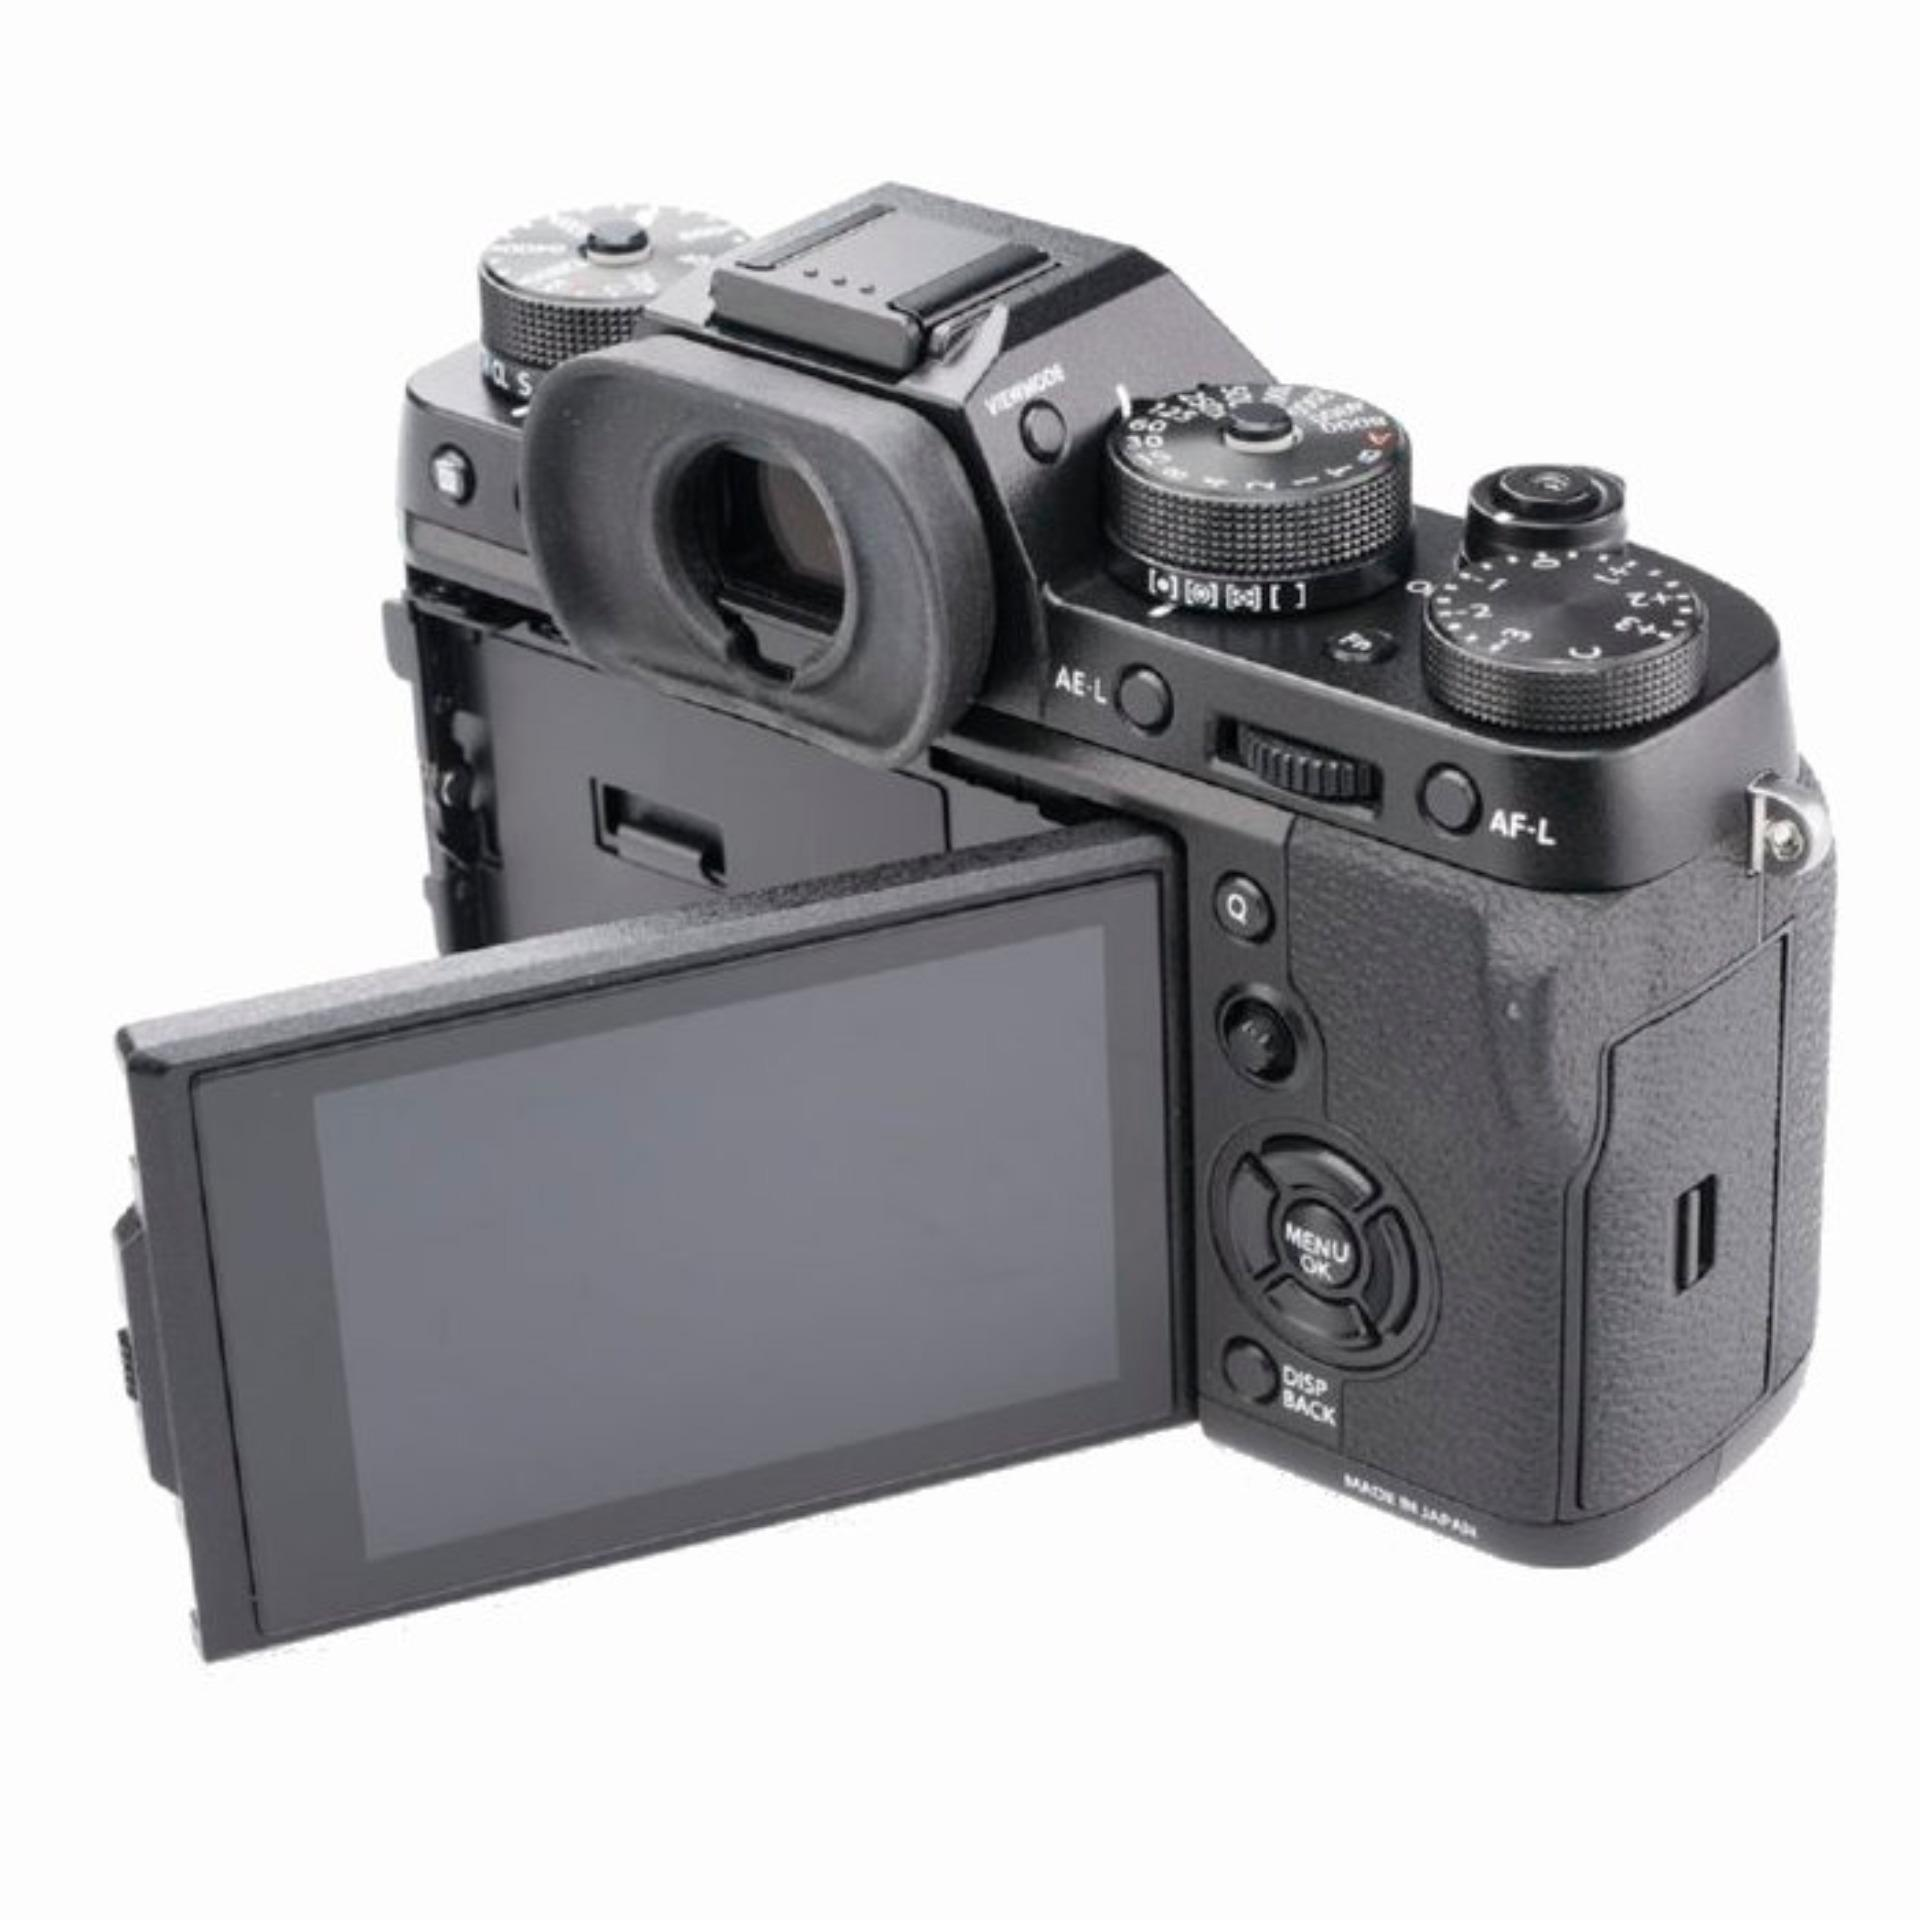 Fujifilm X-T2 Camera Body Only (Black)